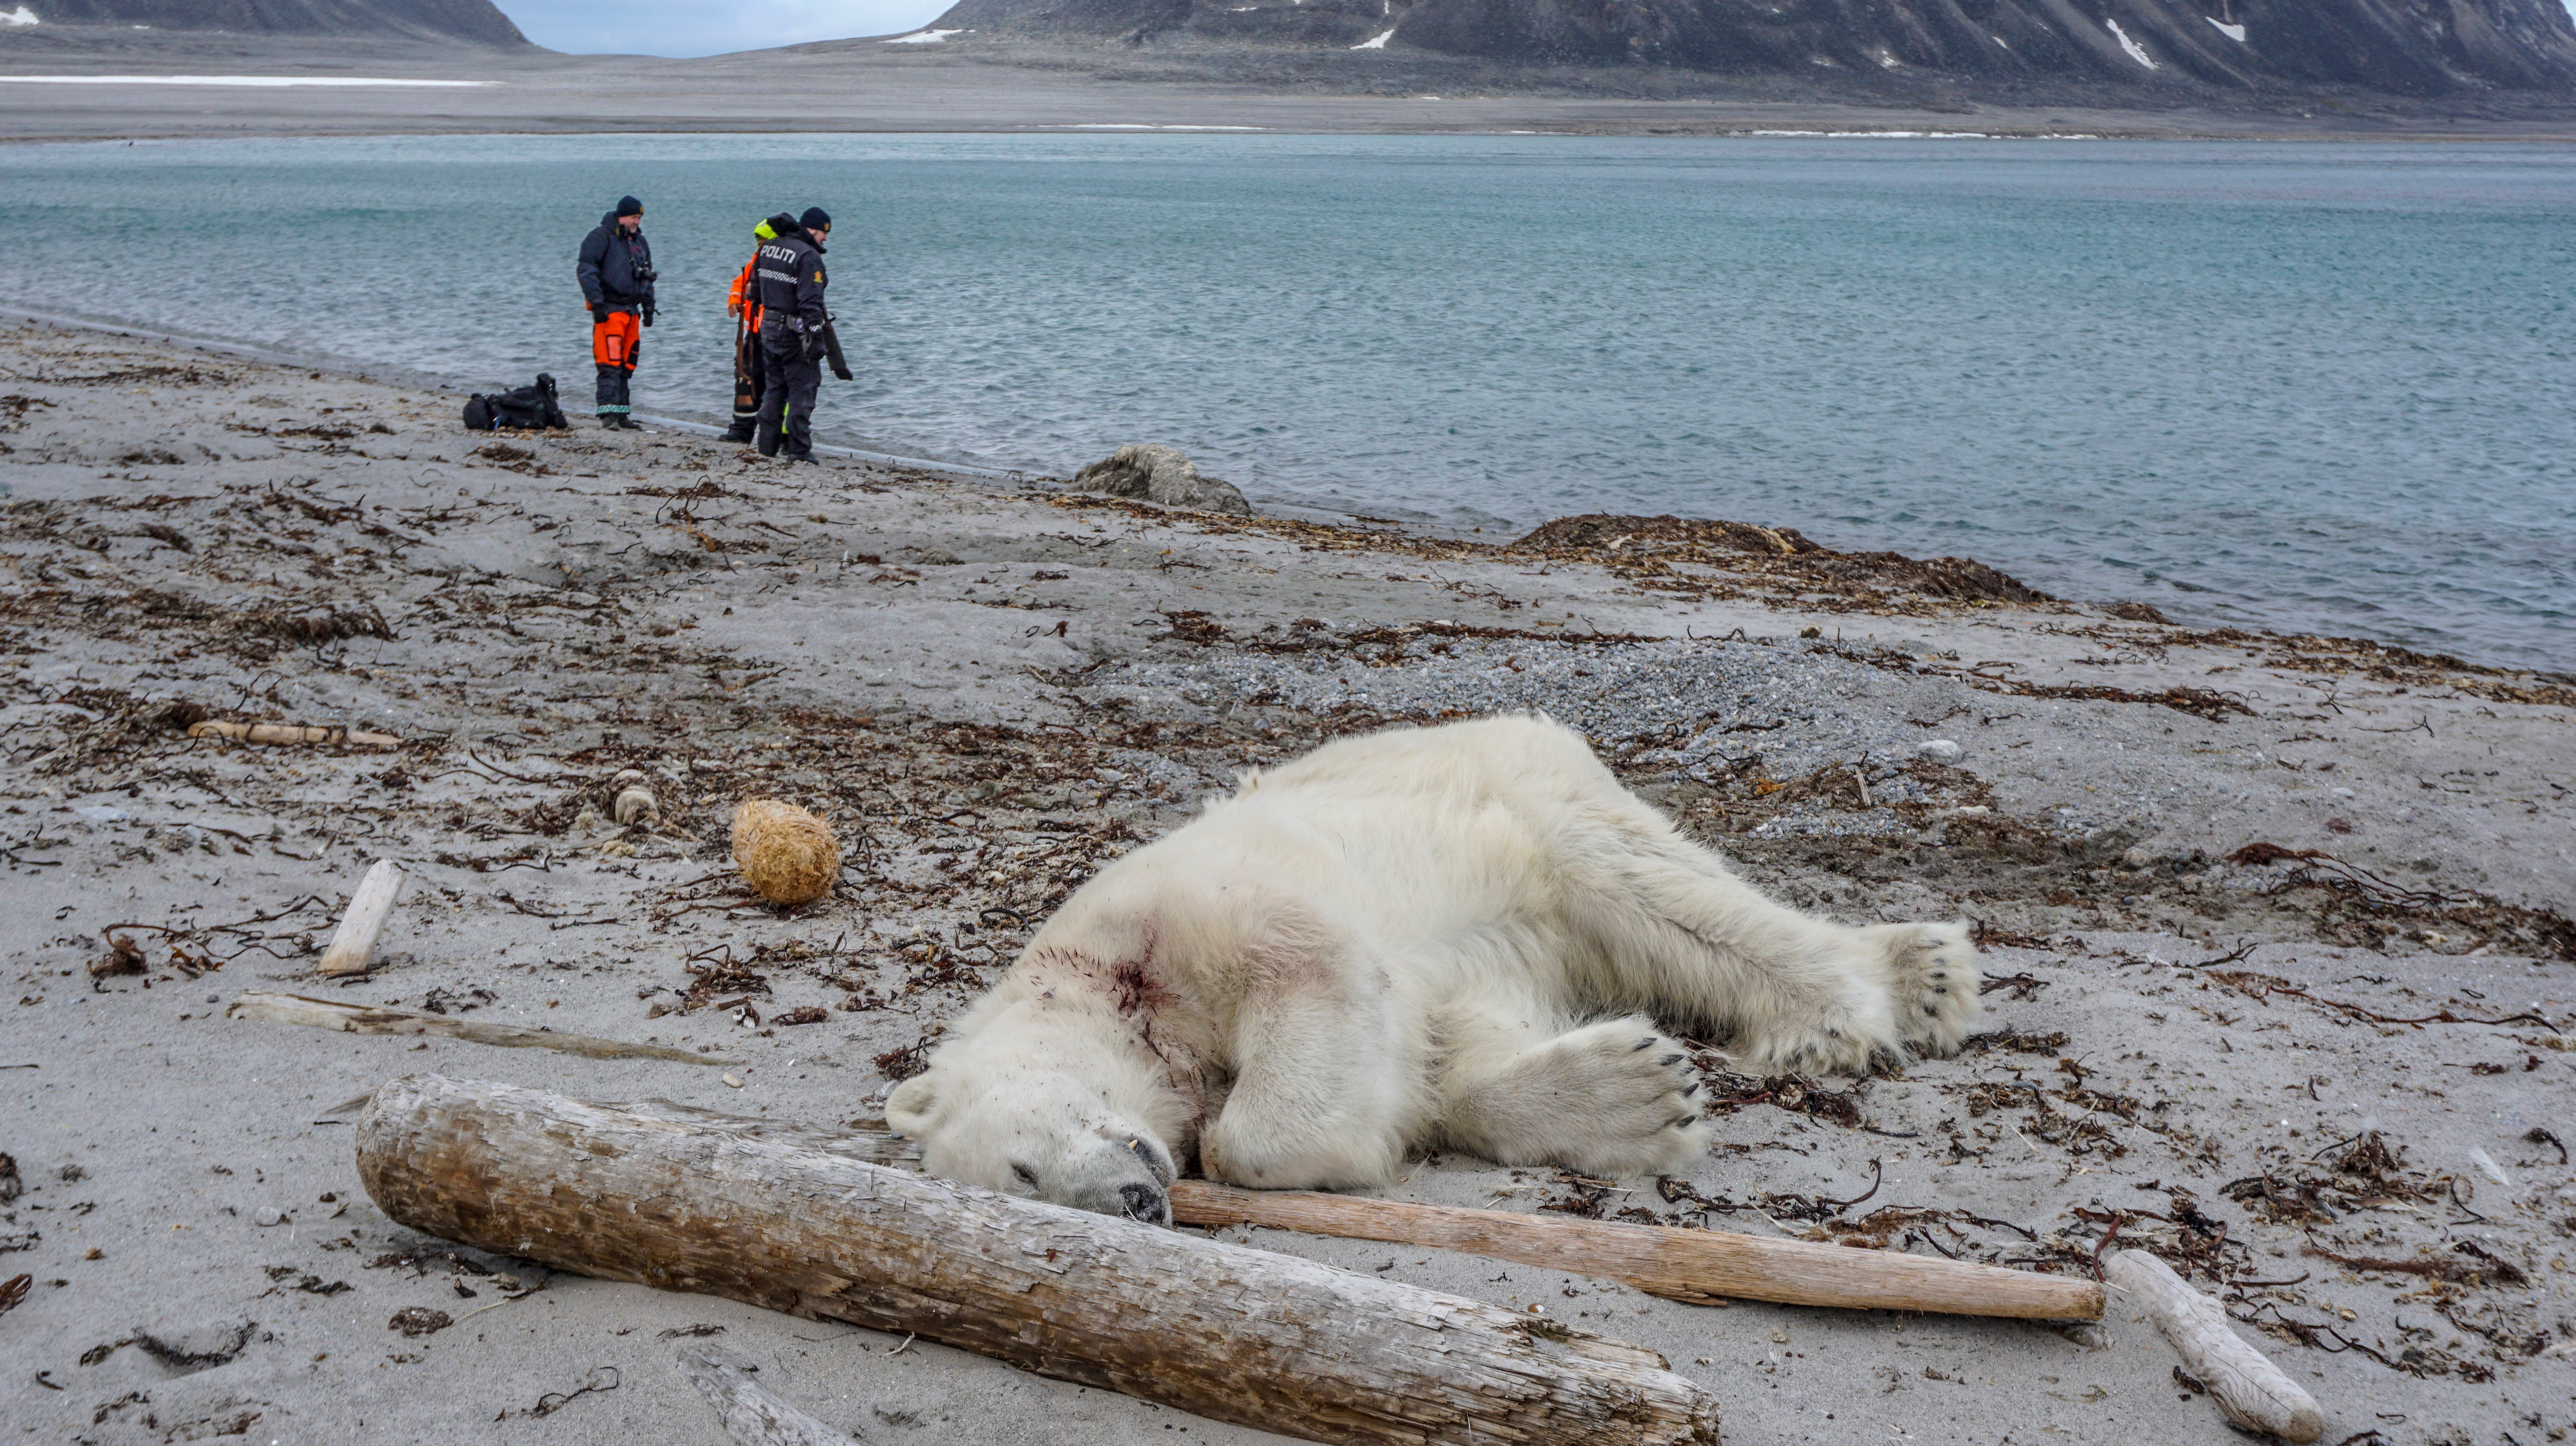 Arctic Cruise Line Staff Shoot And Kill Polar Bear After Alleged Attack On Guard